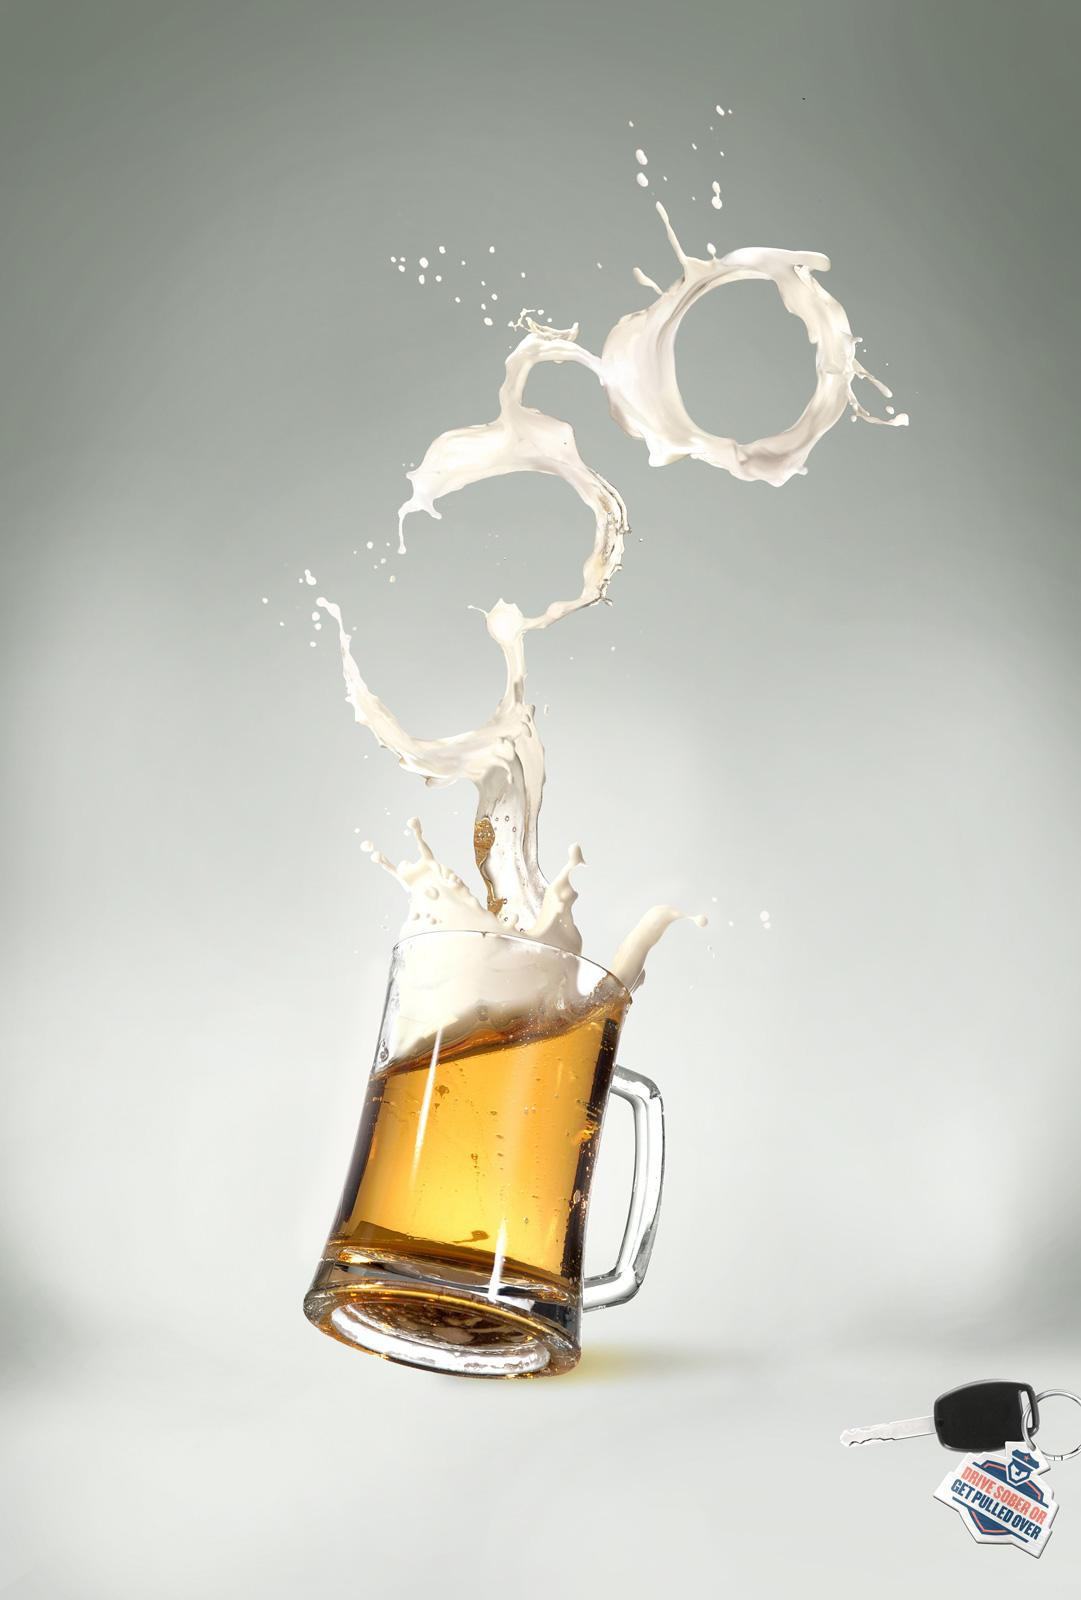 Utah_Department_of_Highway_Safety_Alcohol_Cuffs_Beer_ibelieveinadv.jpg (1081×1600)